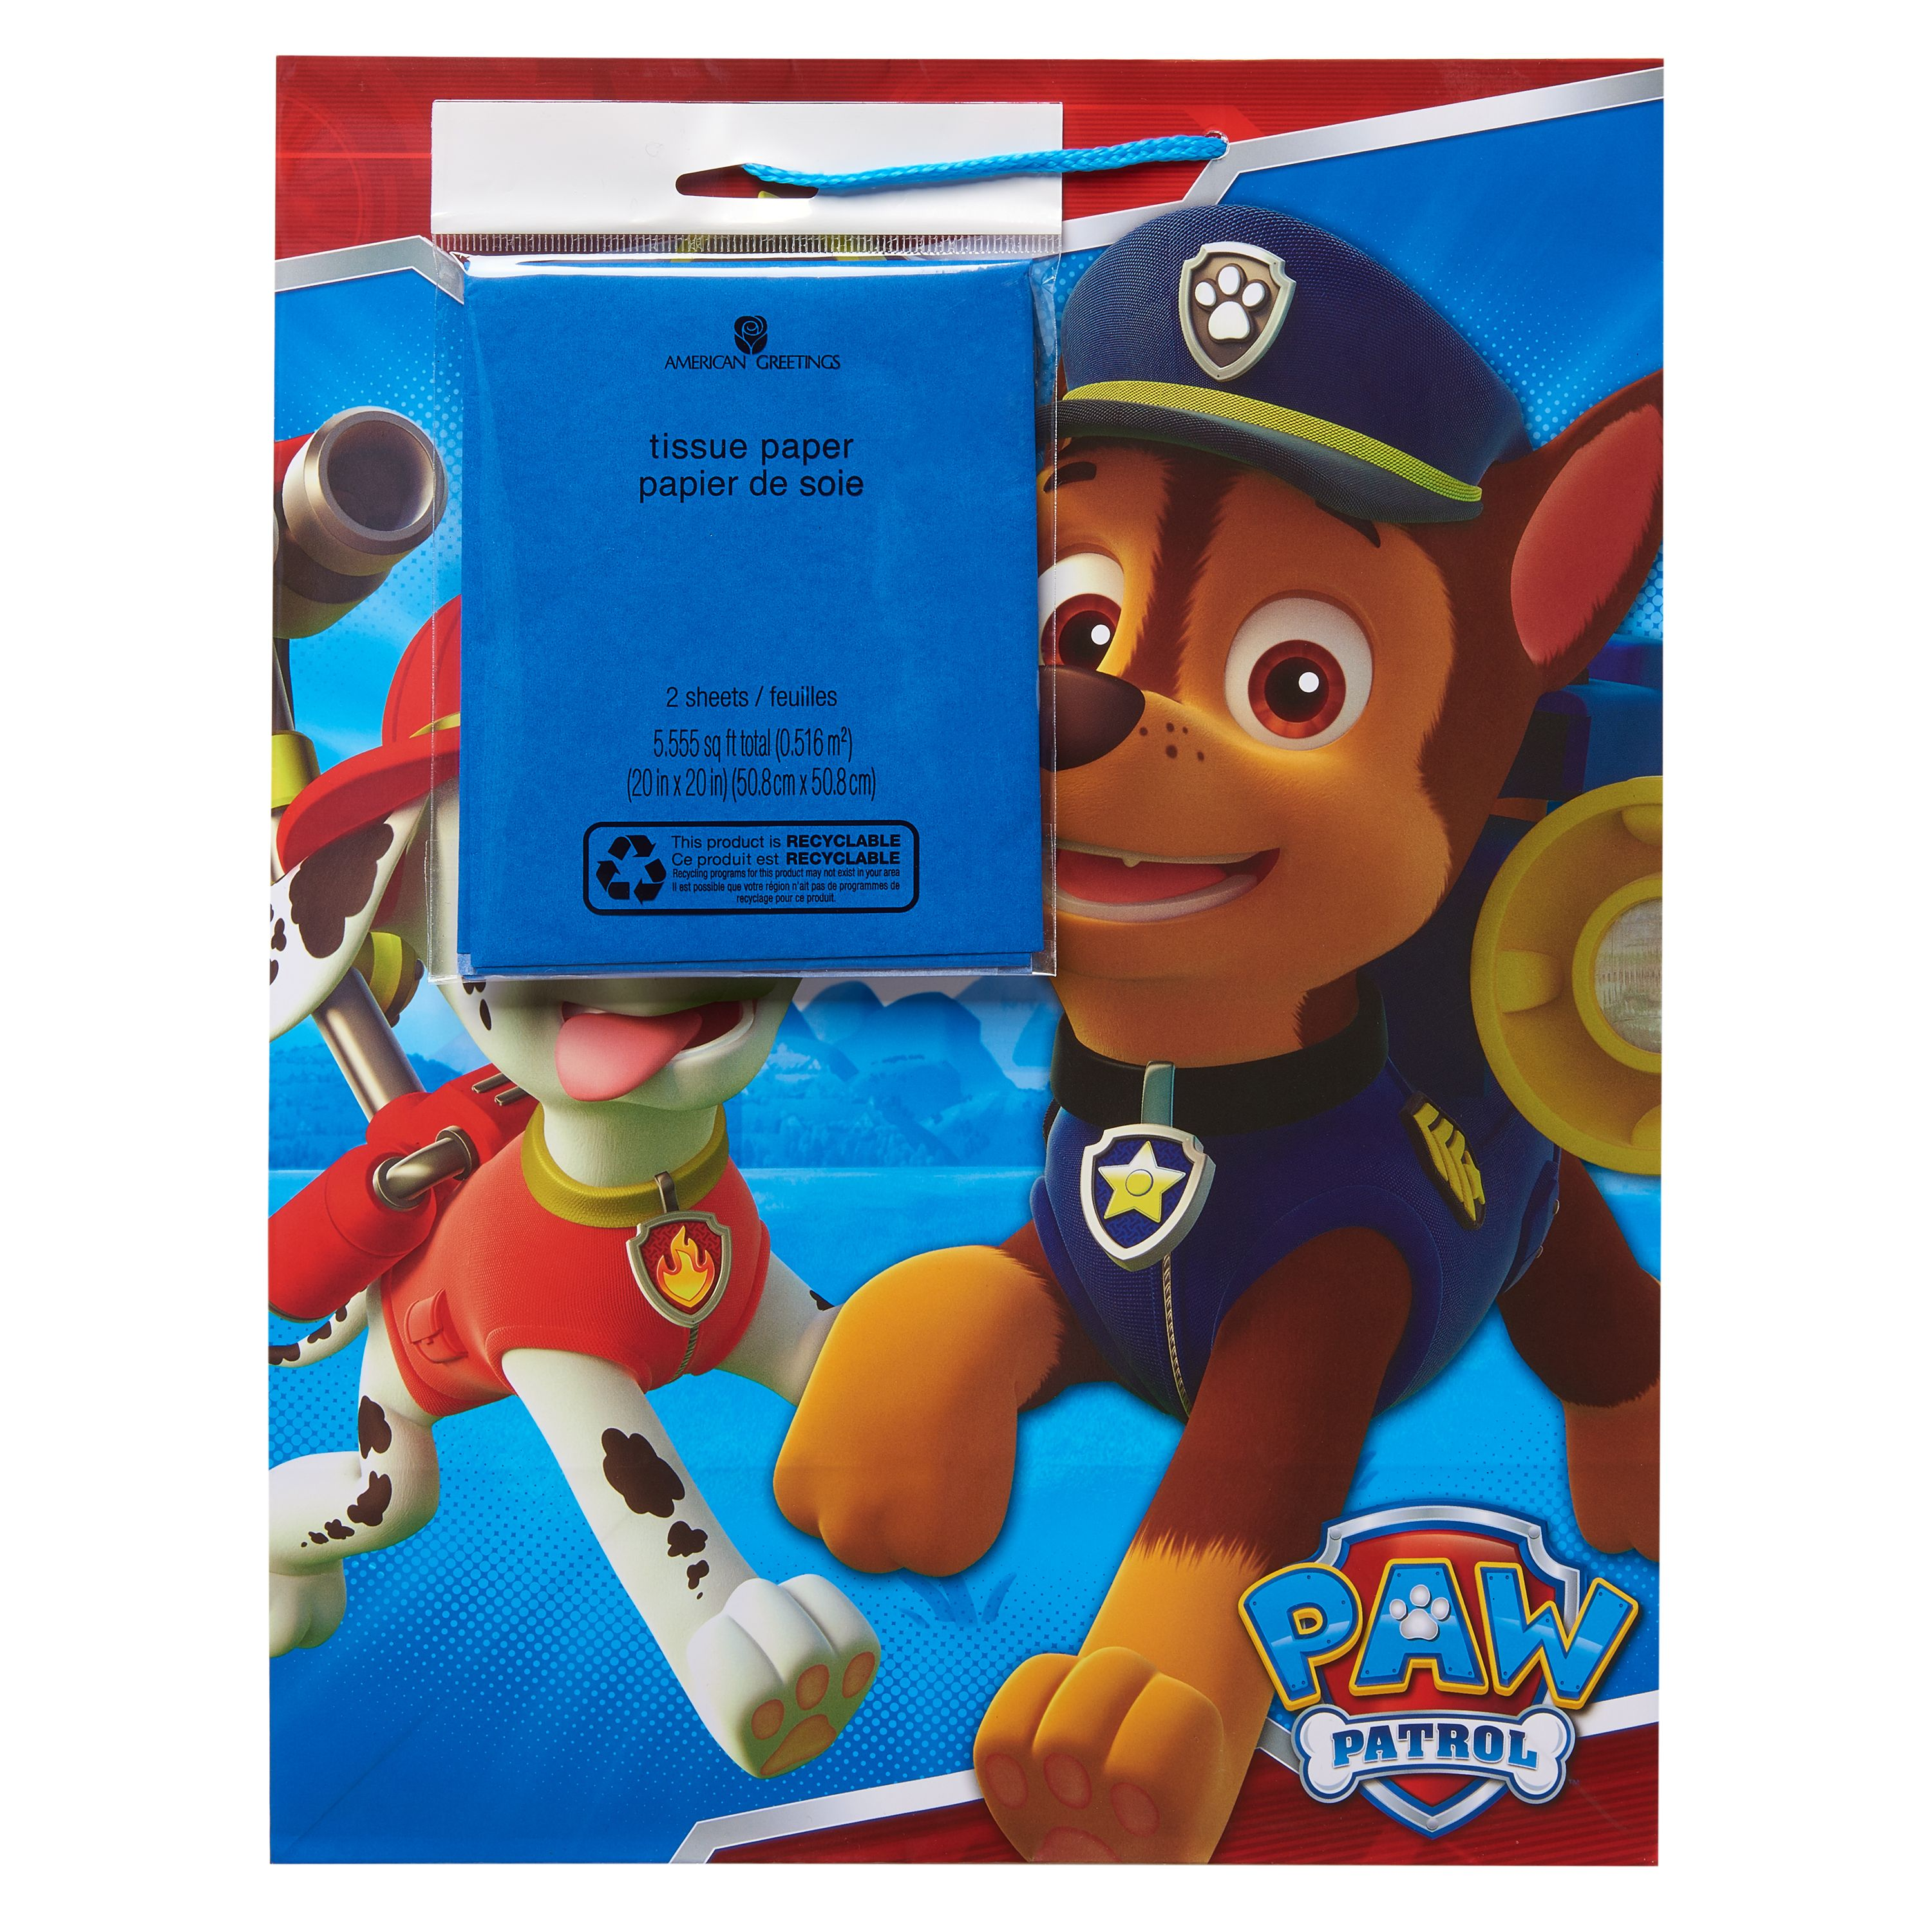 American Greetings PAW Patrol Large Gift Bag with Blue Tissue Paper